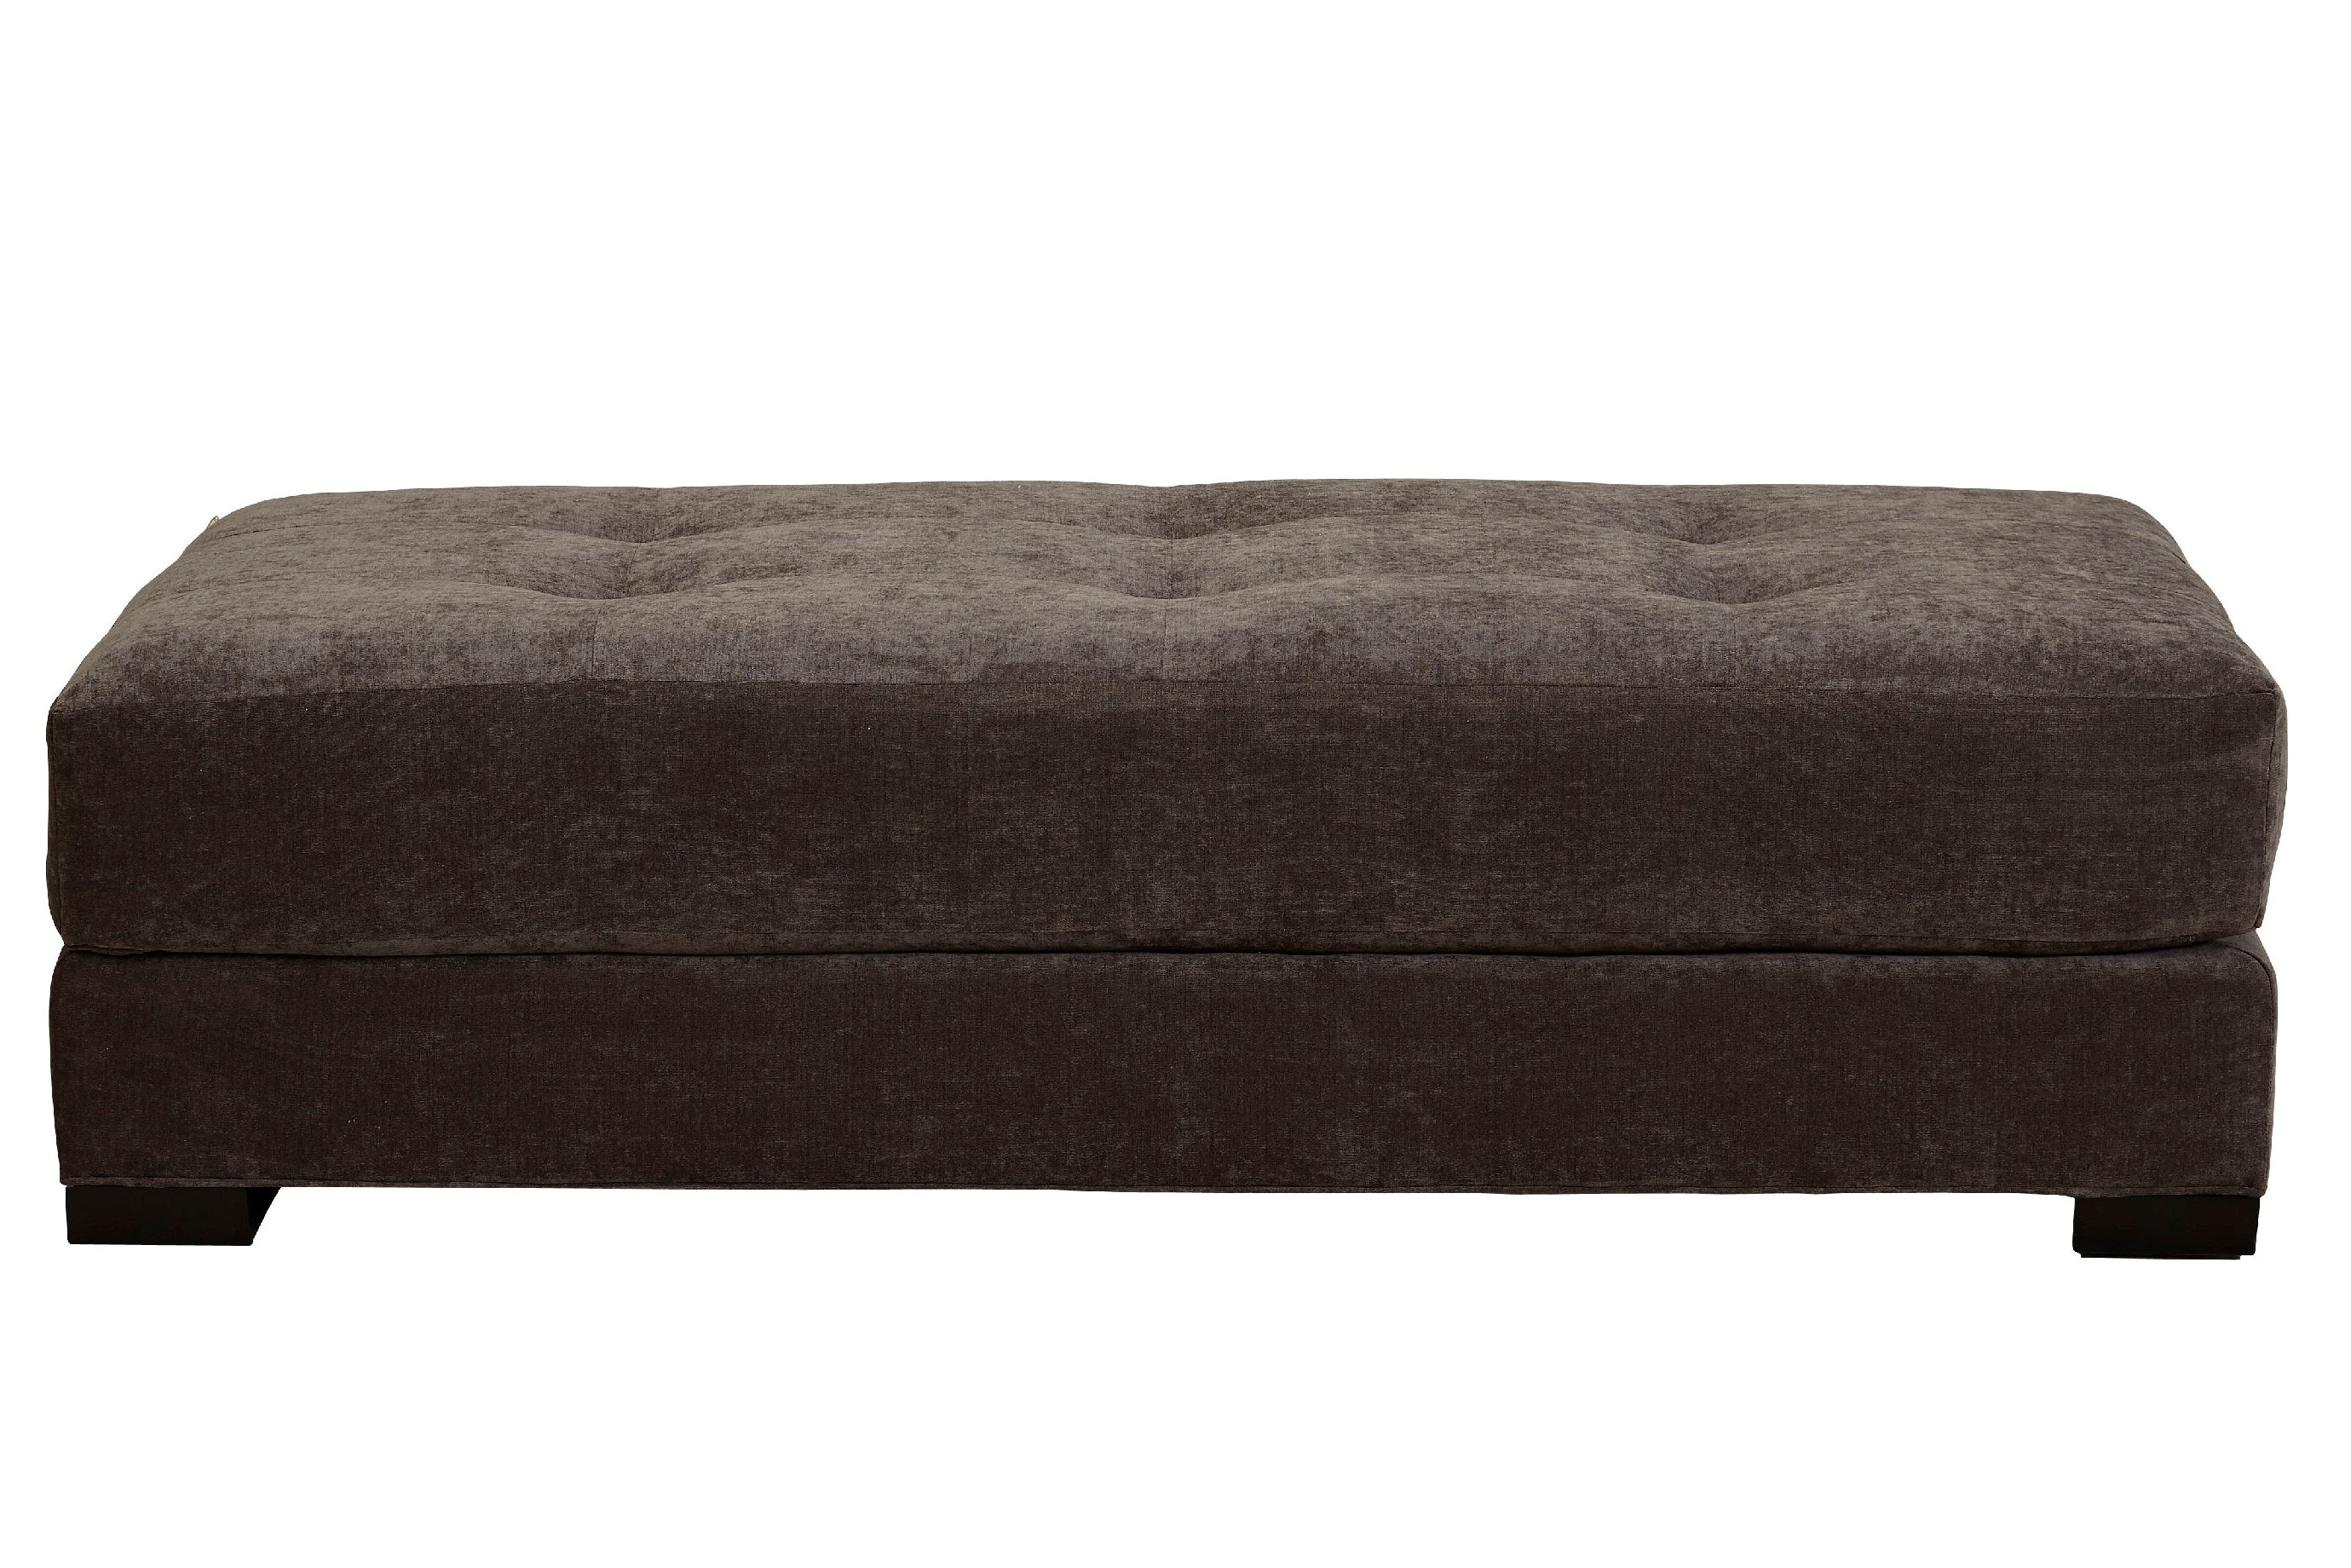 Attractive Southern Furniture Living Room GLENWOOD BENCH 41205 At Eastern Furniture